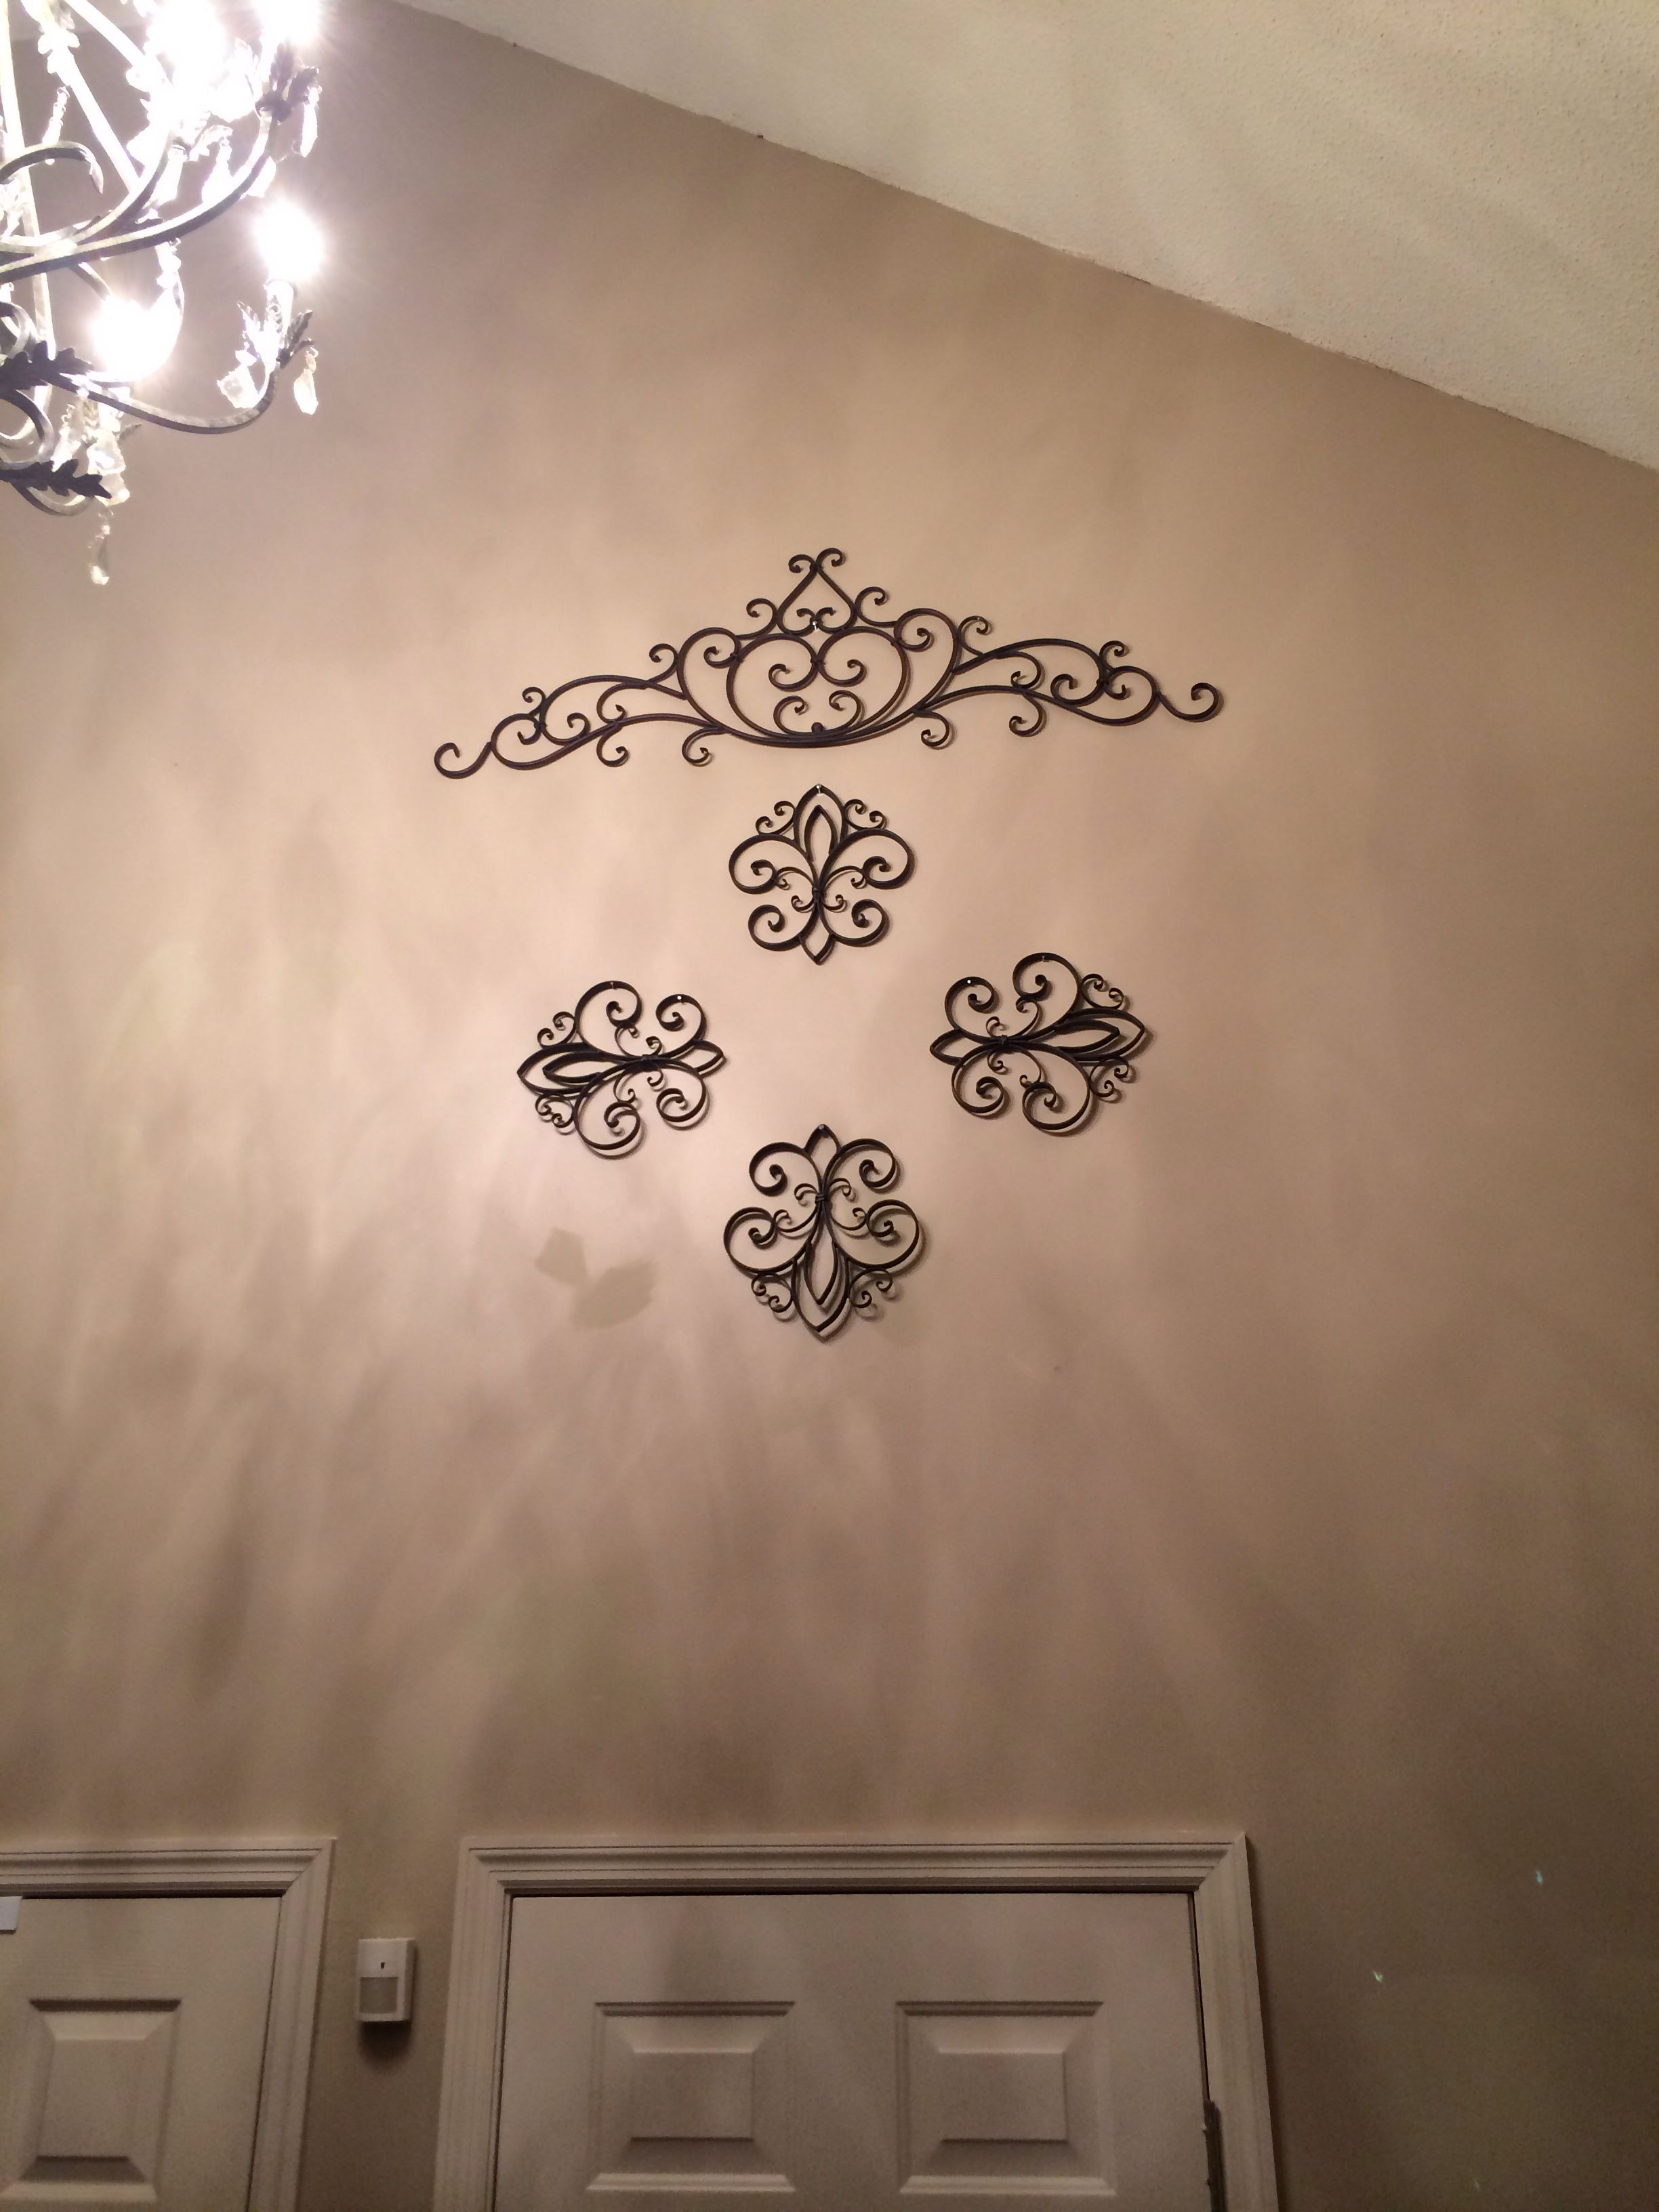 Arrange metal wall art to fill large empty wall space two story